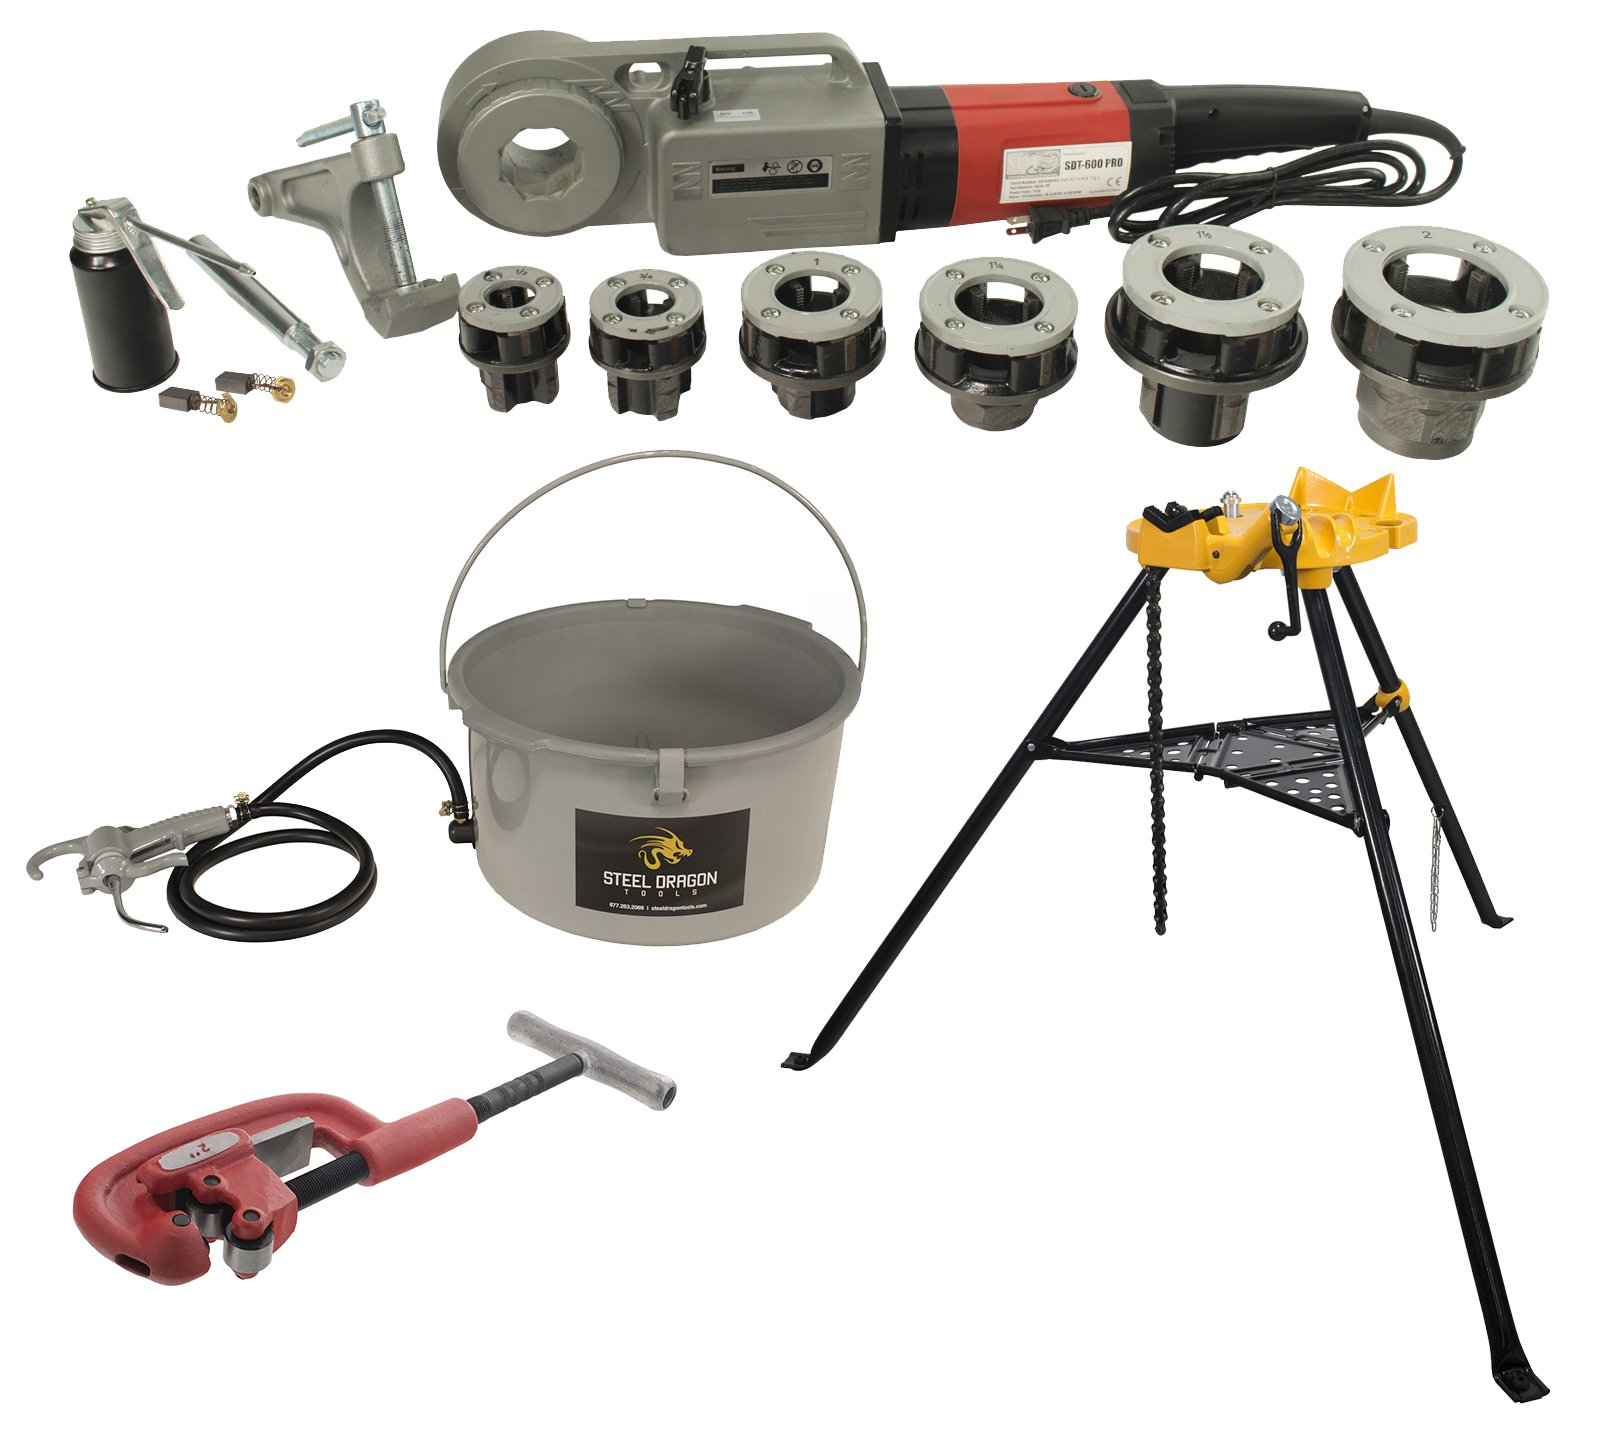 Steel Dragon Tools 600 Pro Hand-Held Pipe Threader 460 Chain Vise, 418 Oiler, and 2A Cutter fits RIDGID12-R Dies